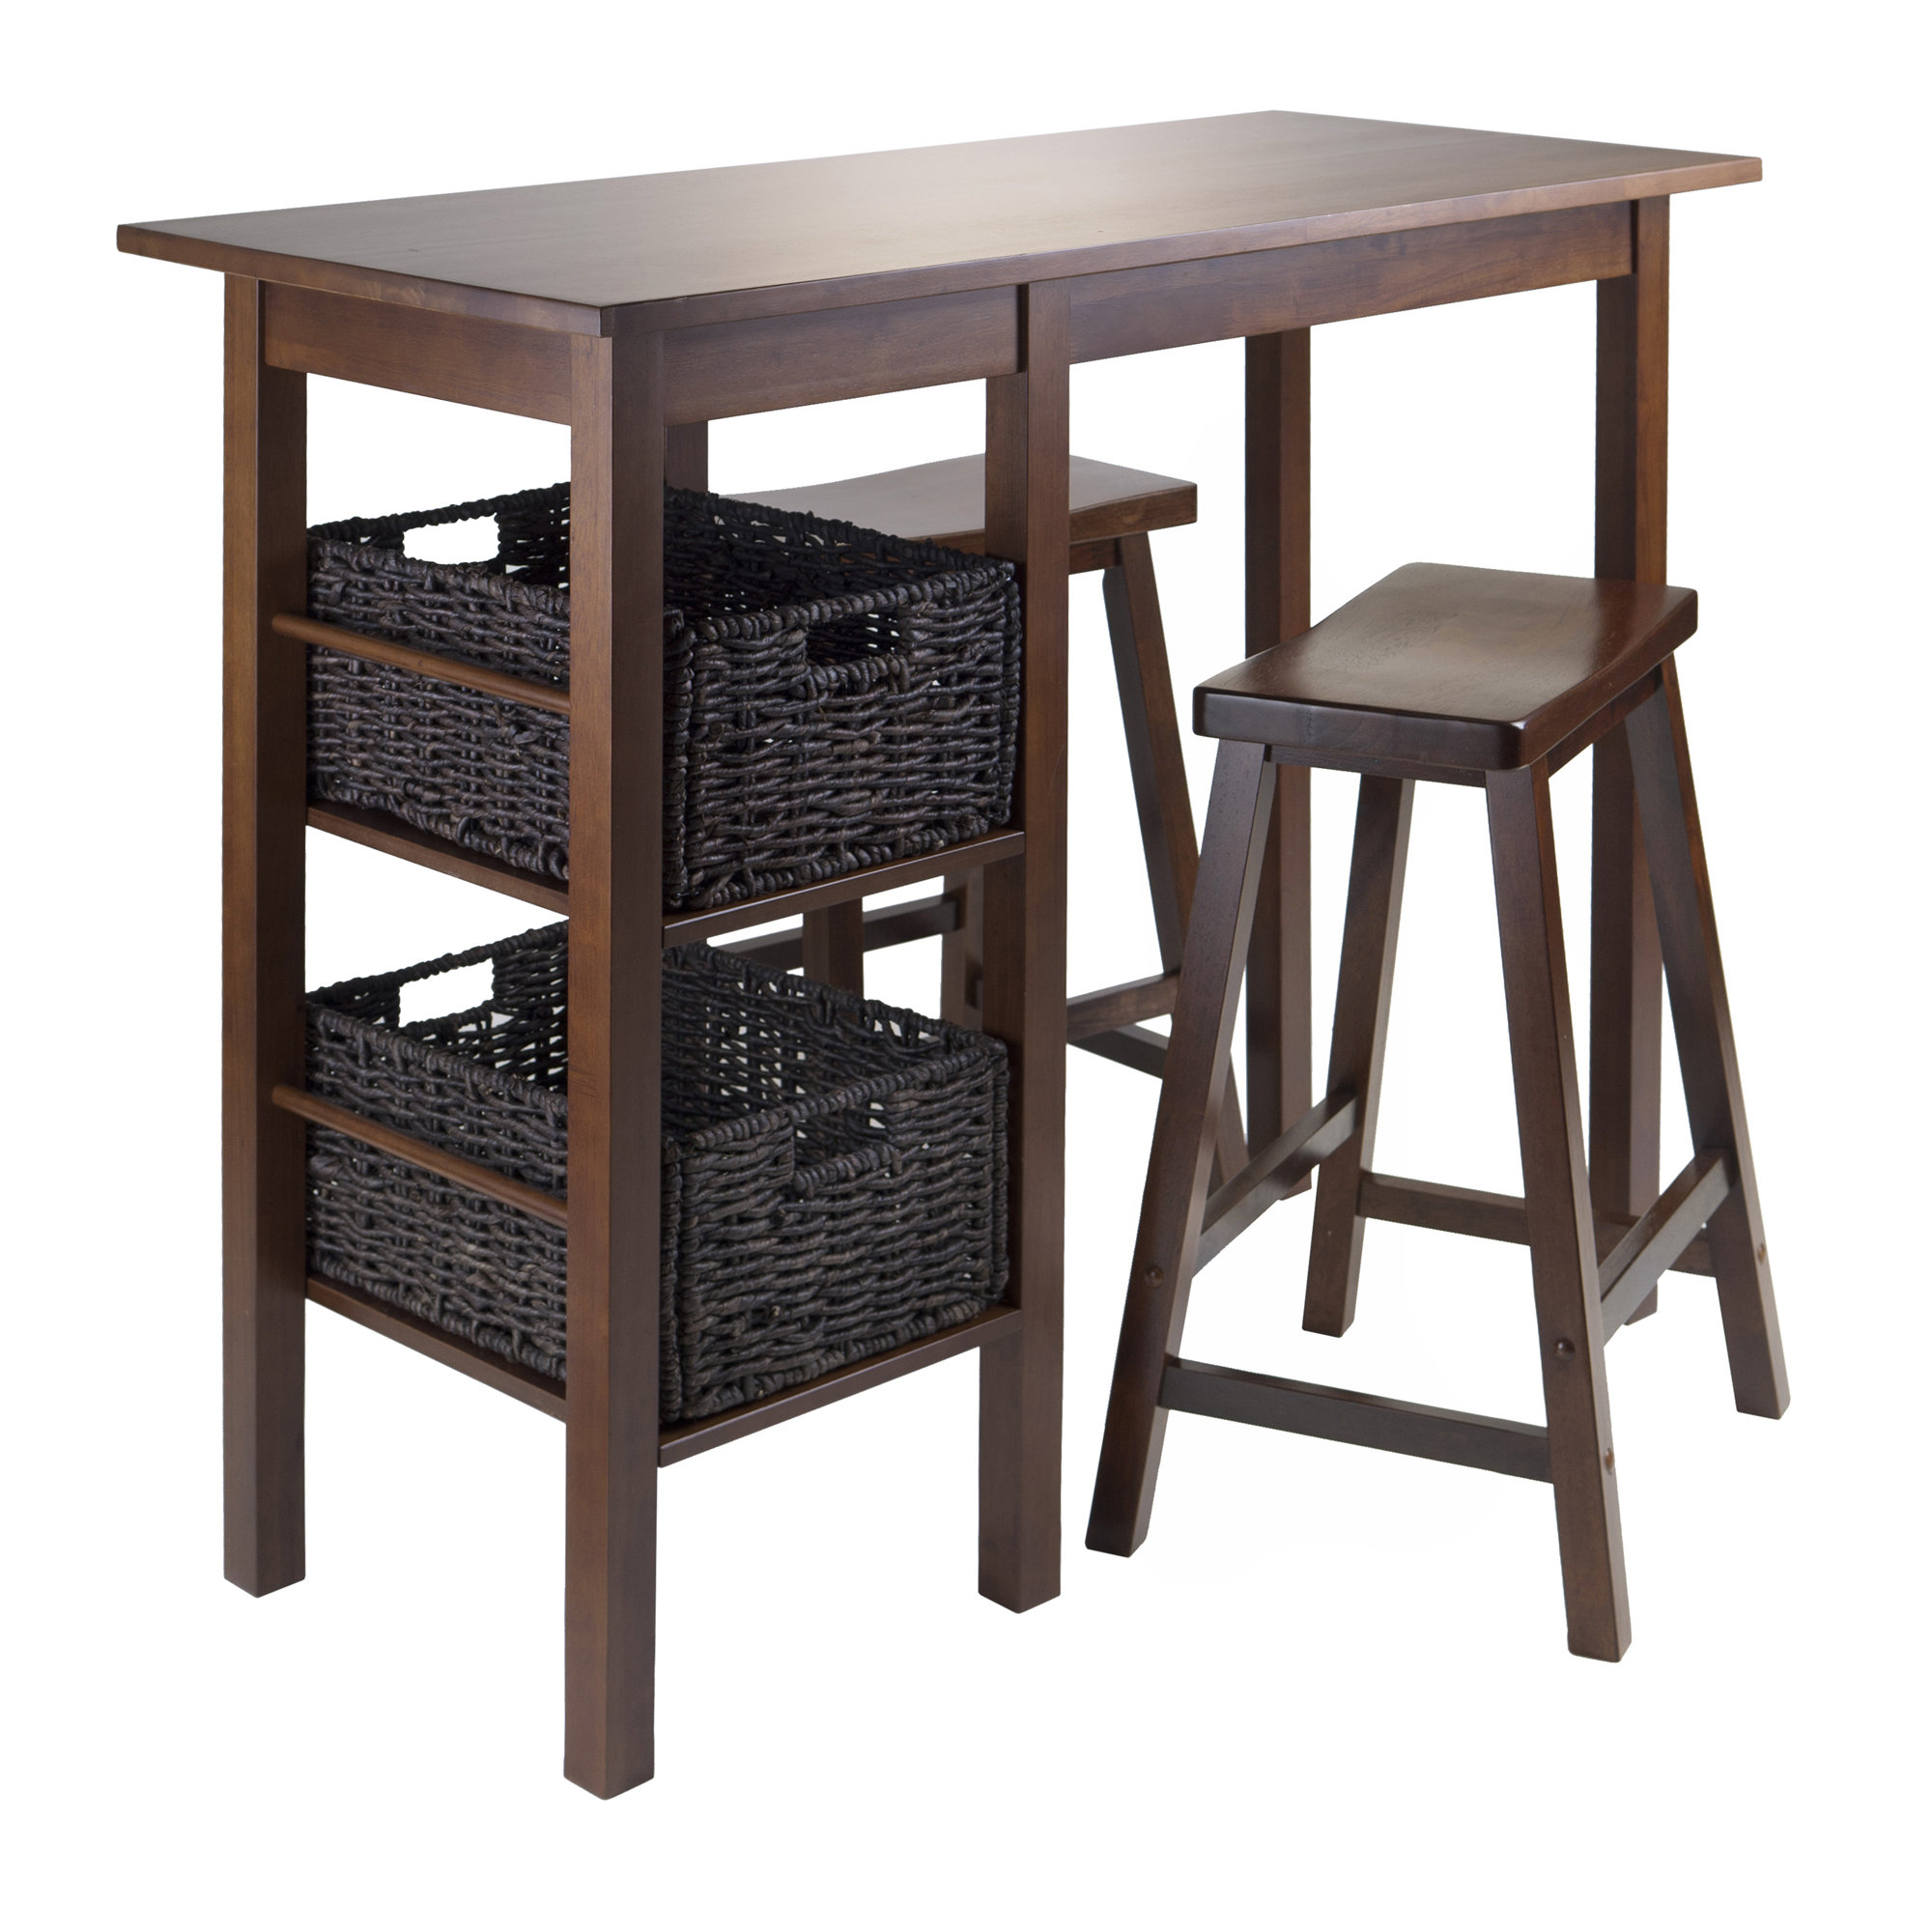 Wayfair Intended For Poynter 3 Piece Drop Leaf Dining Sets (View 23 of 25)